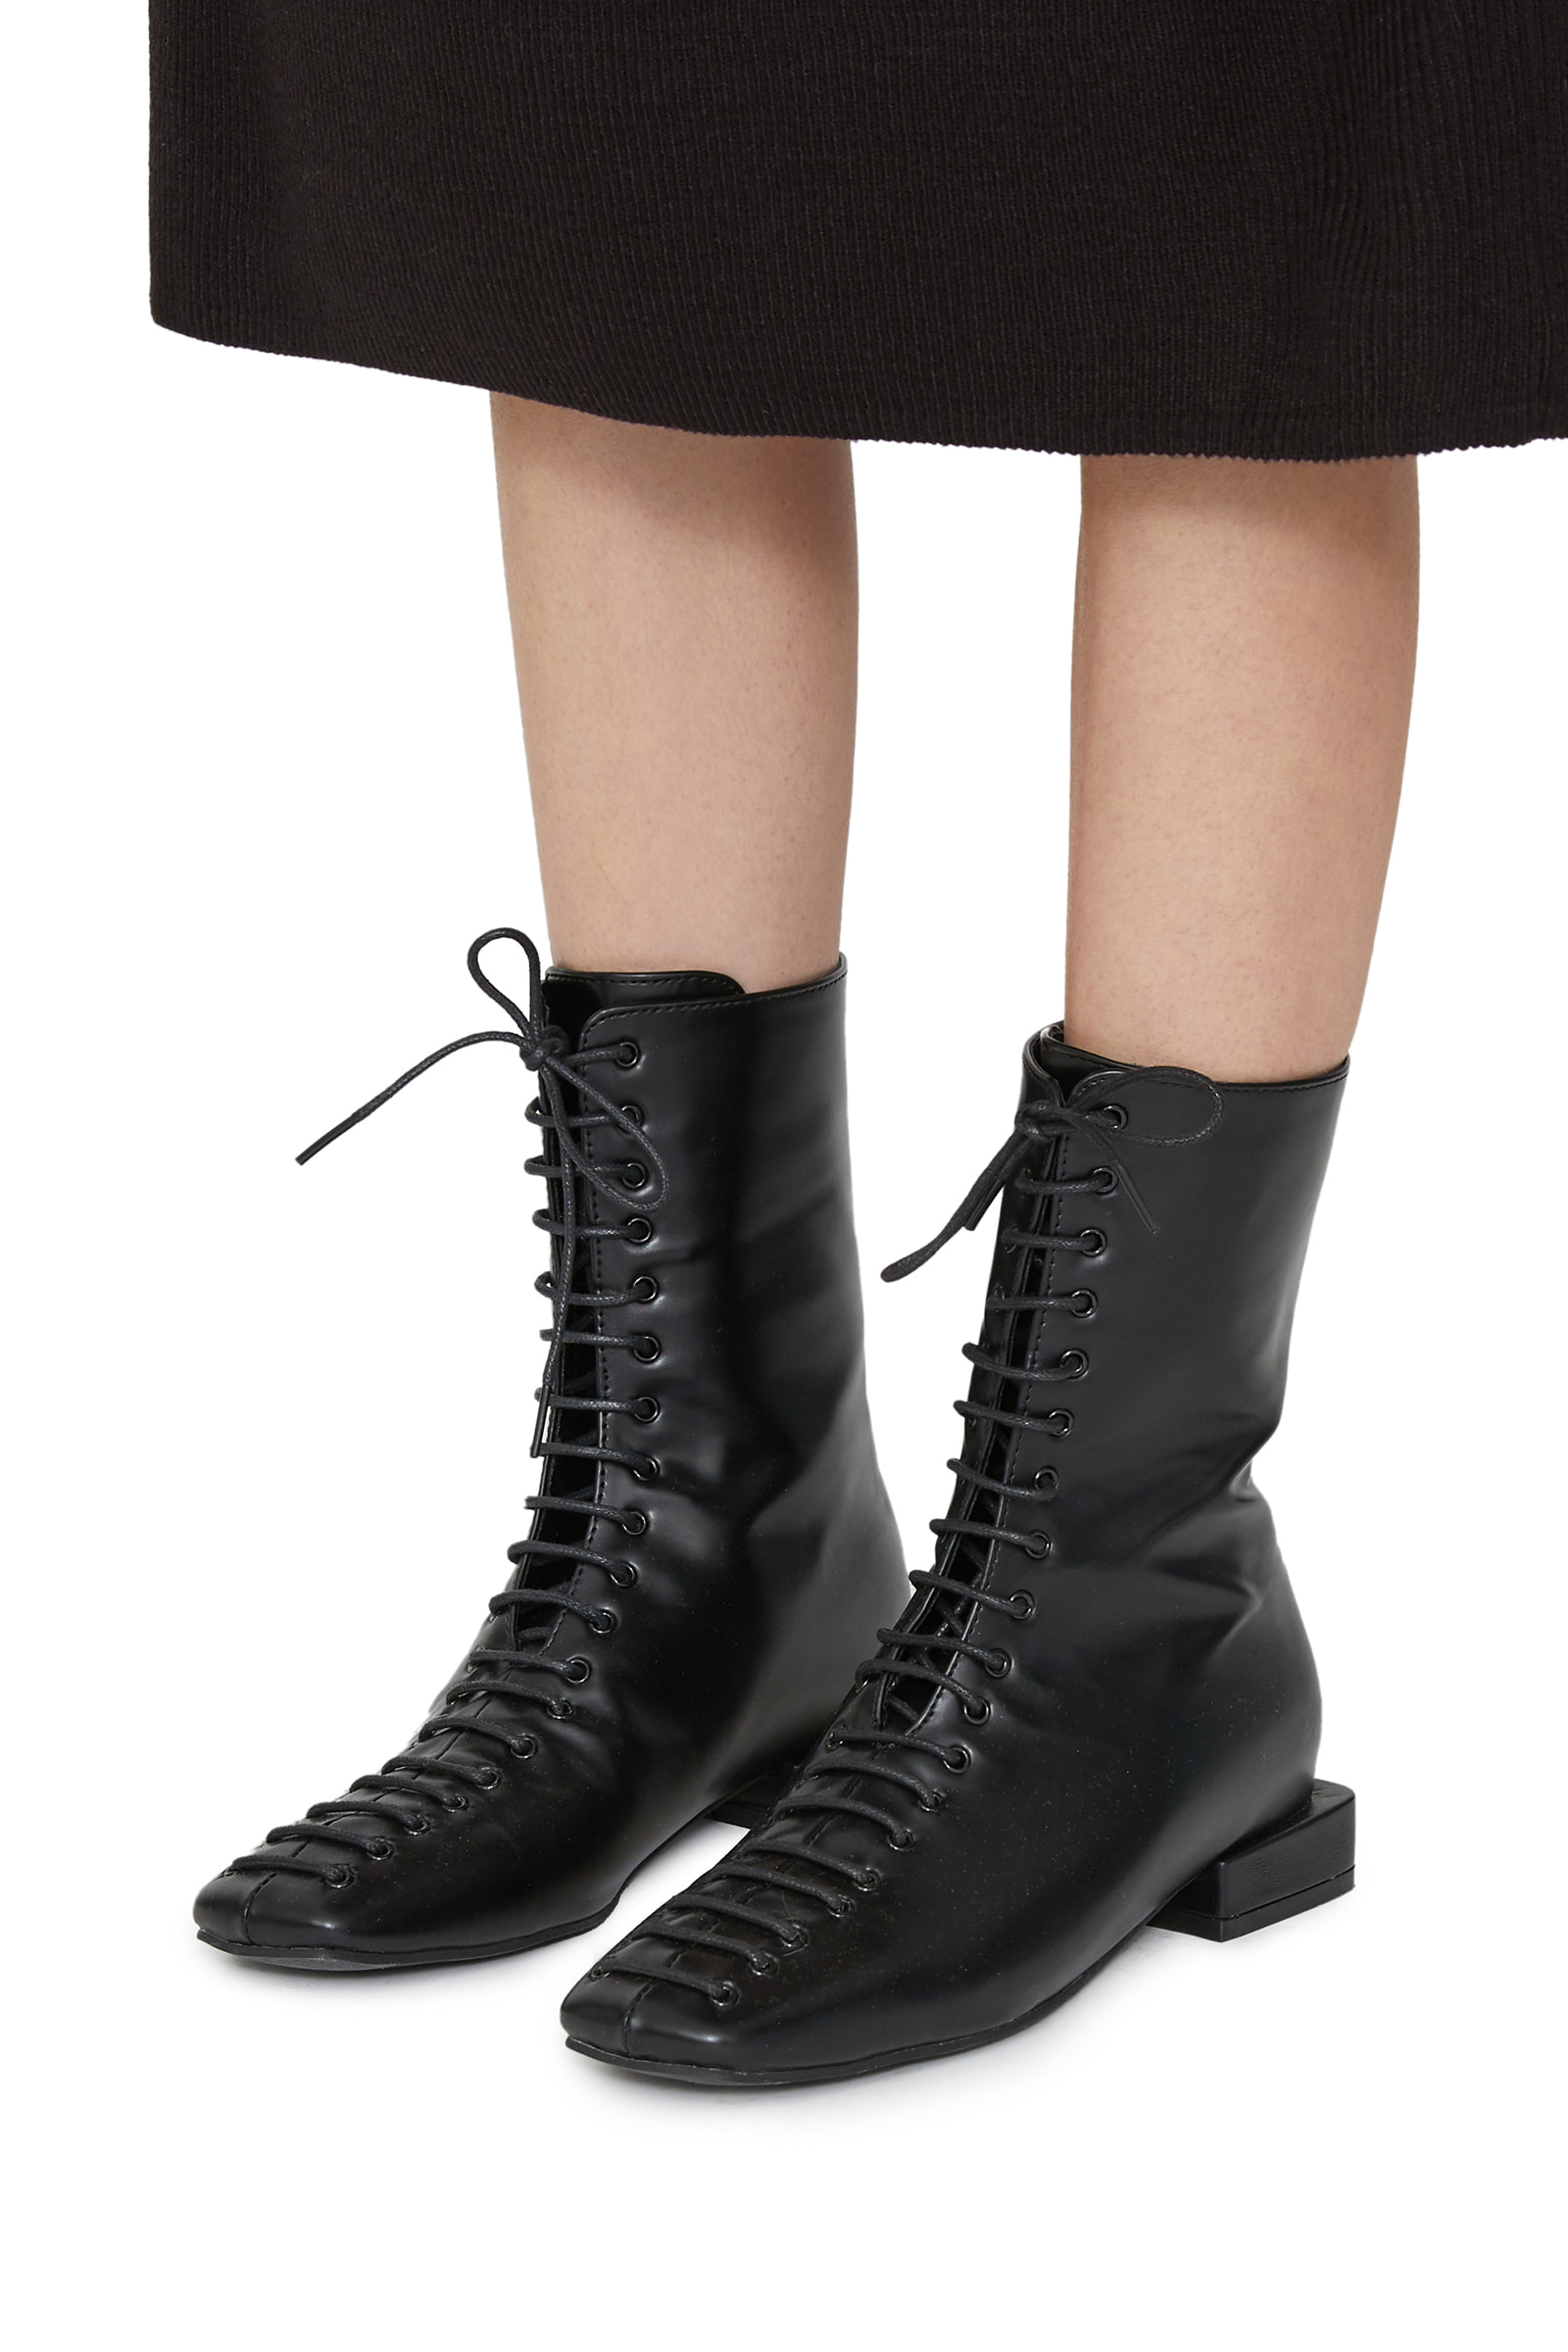 Carney square lace-up ankle boots